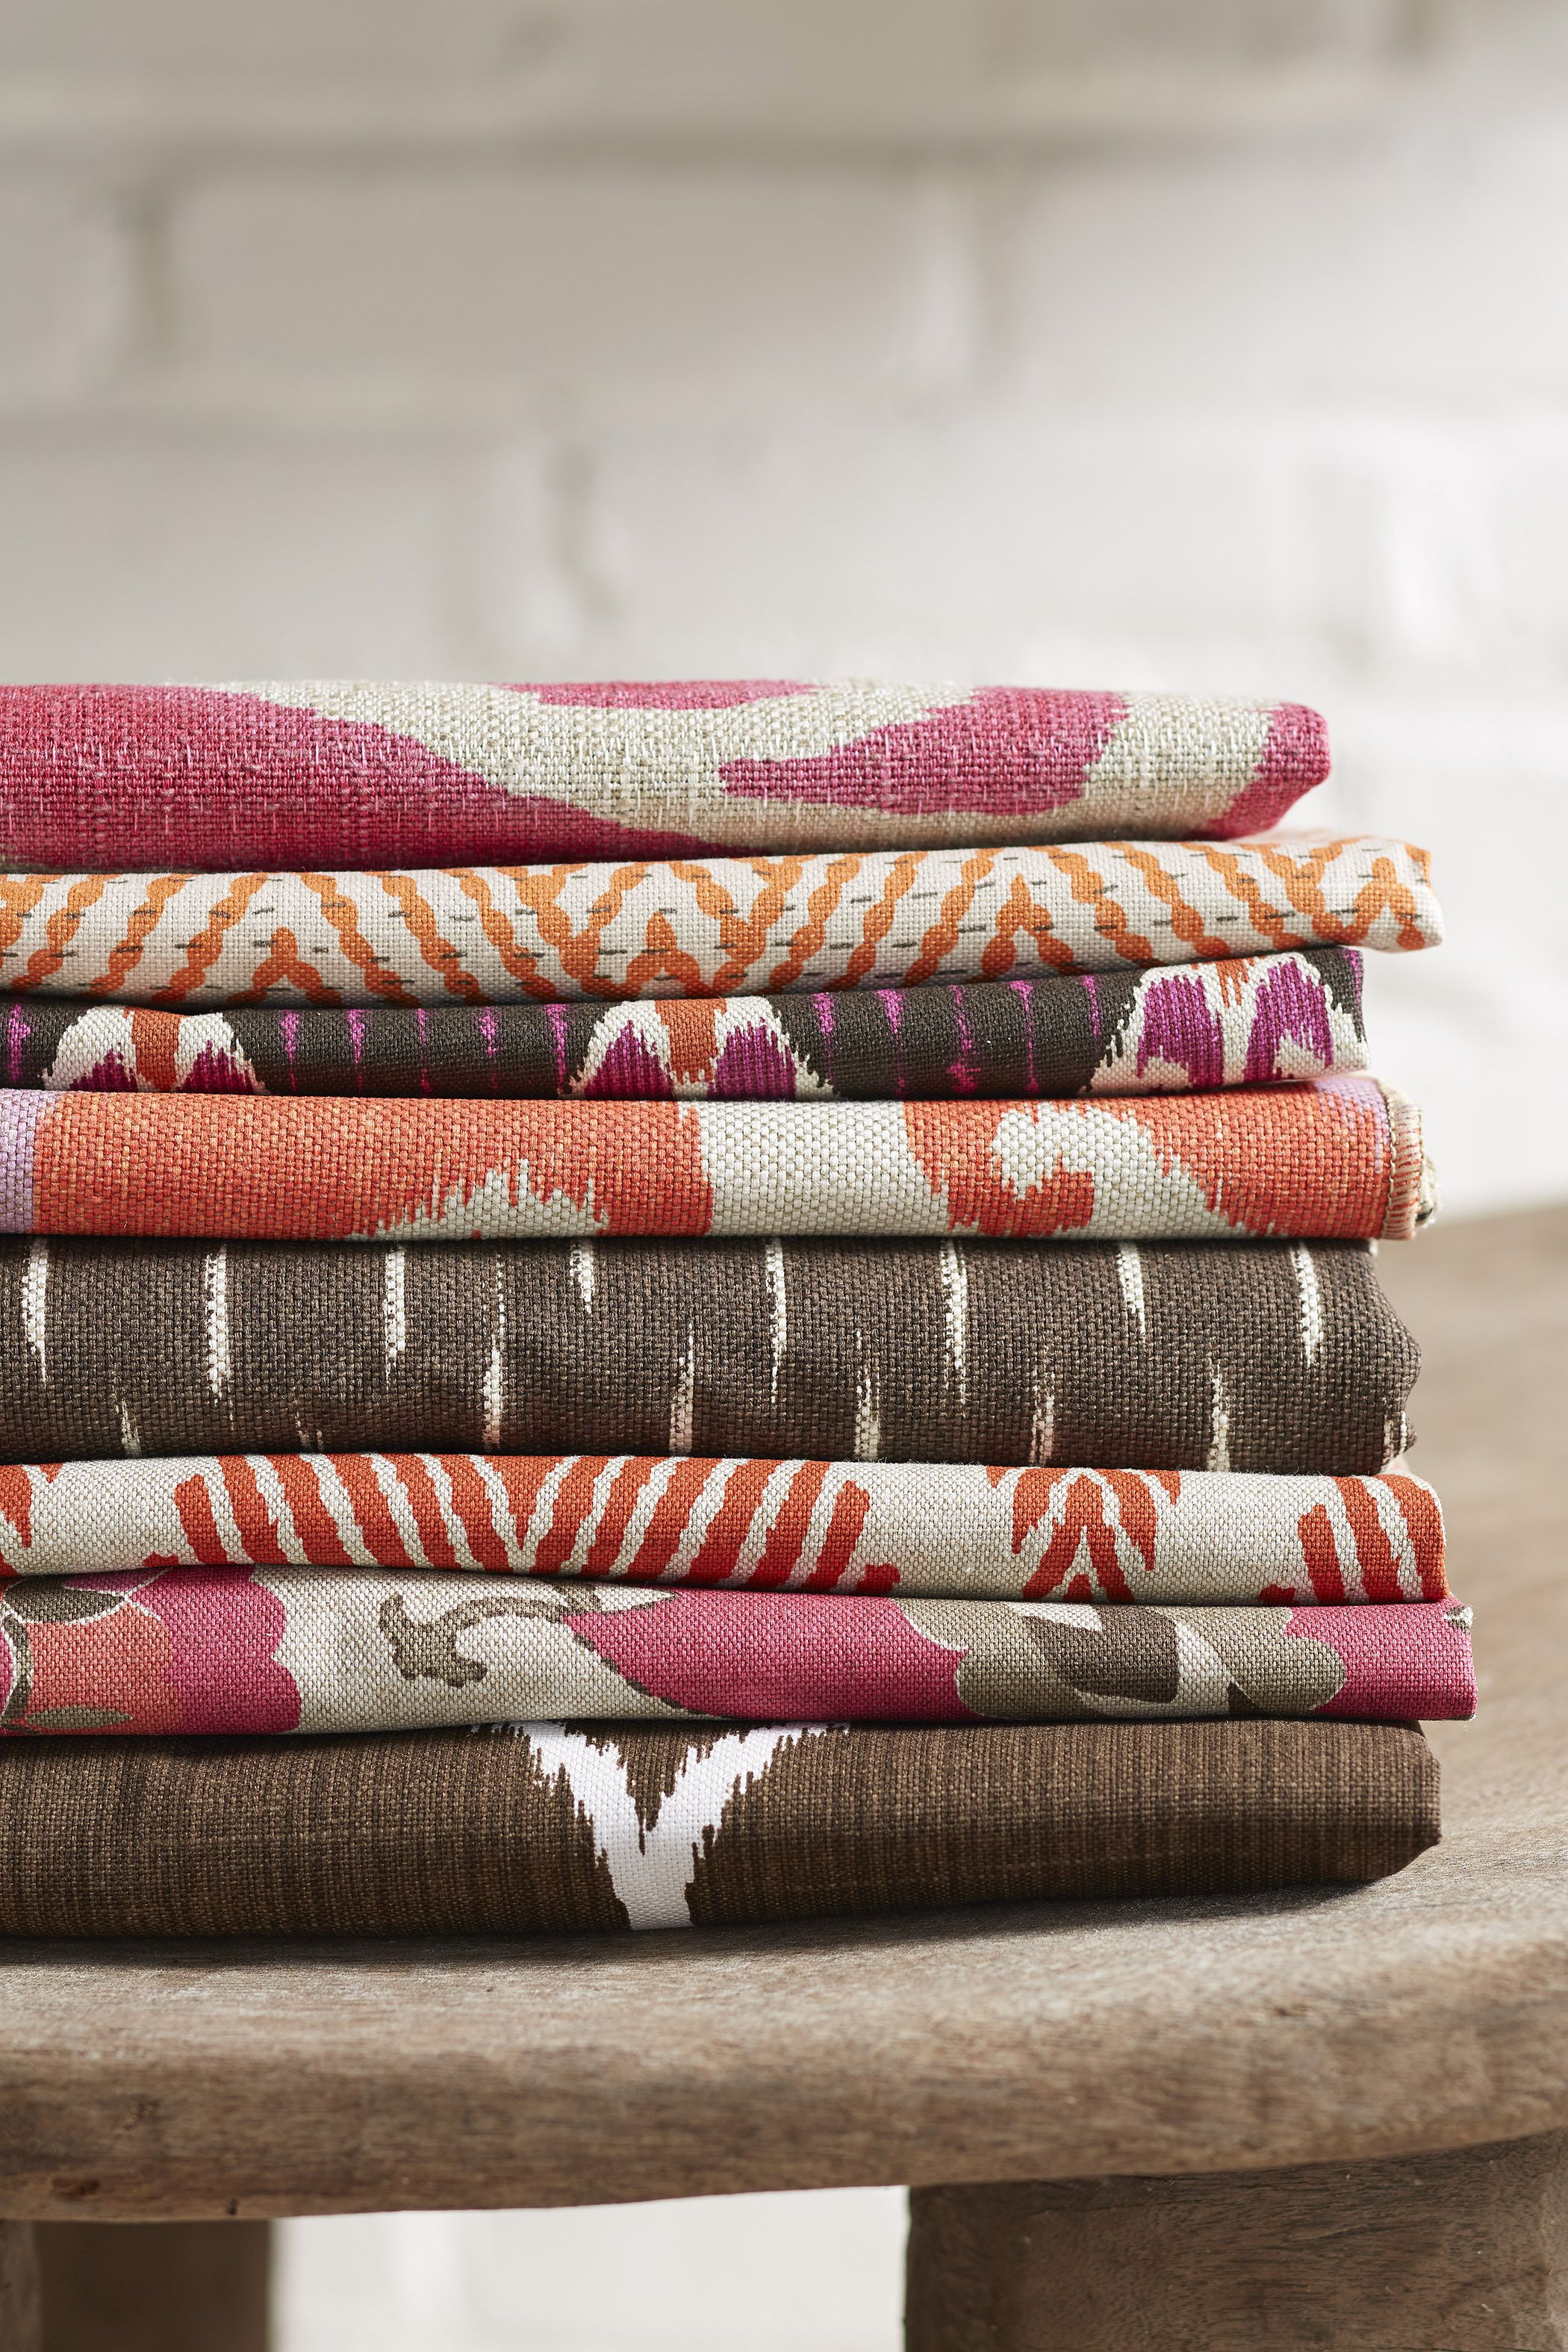 Lacefield Hibiscus Textiles #pink #ikat #colorful #textiledesigner #lacefielddesigns www.lacefielddesigns.com